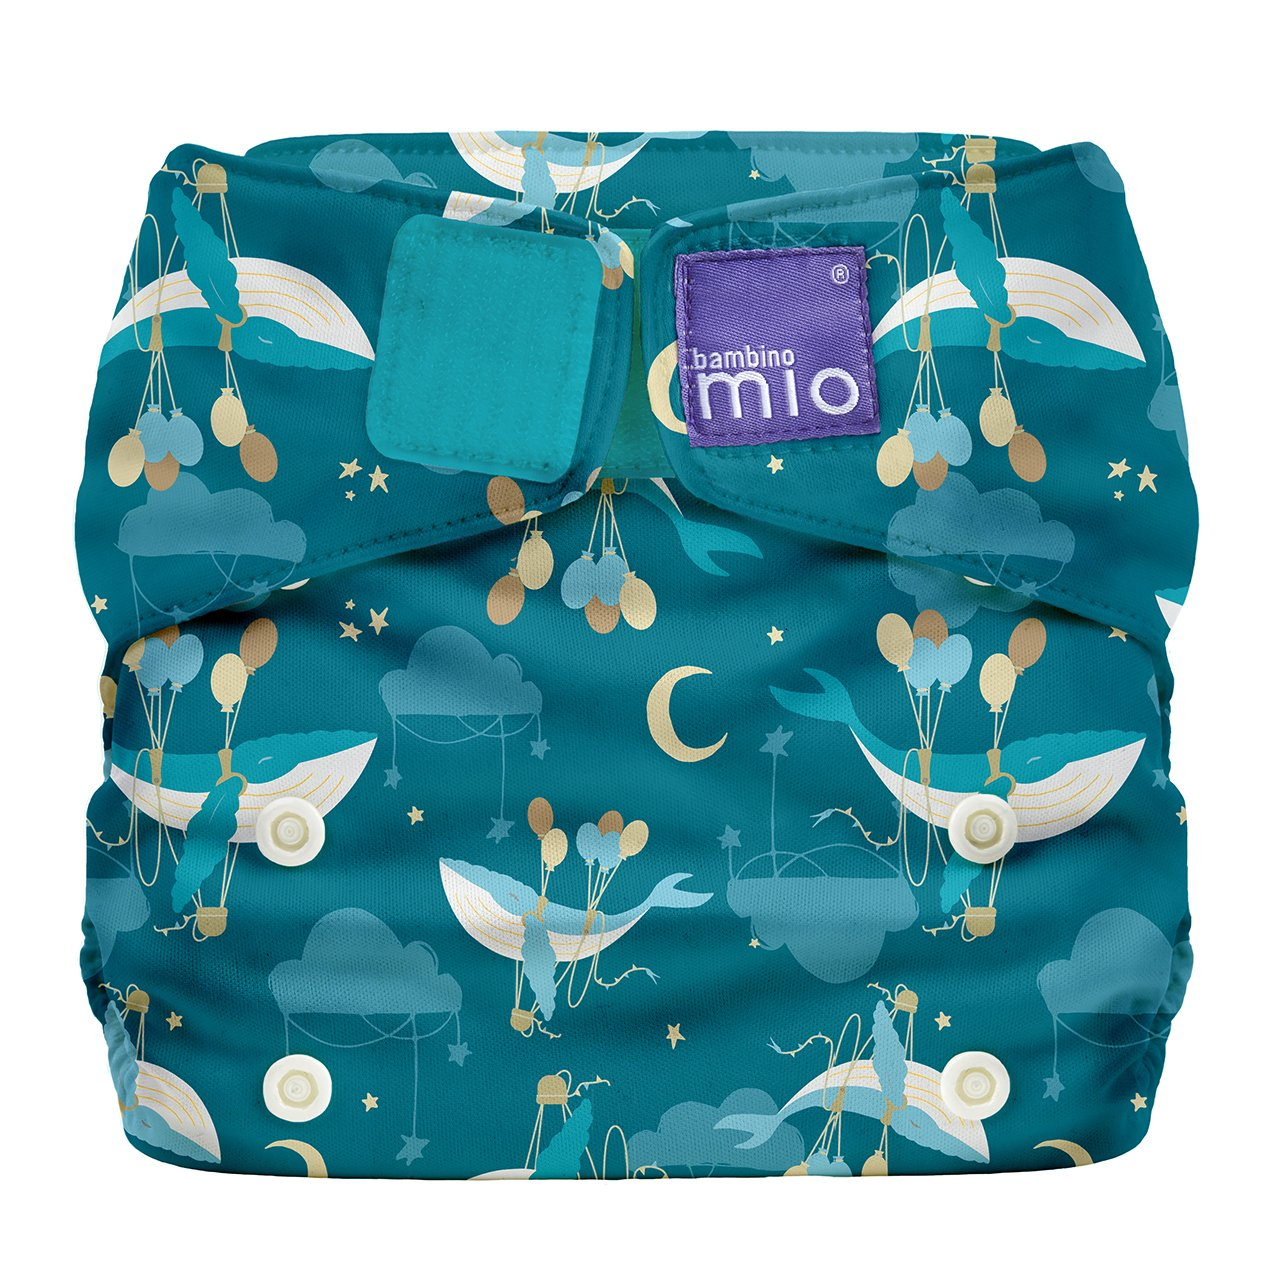 Bambino Mio, Miosolo All-In-One Reusable Nappy, Onesize, Bumble SO BUM